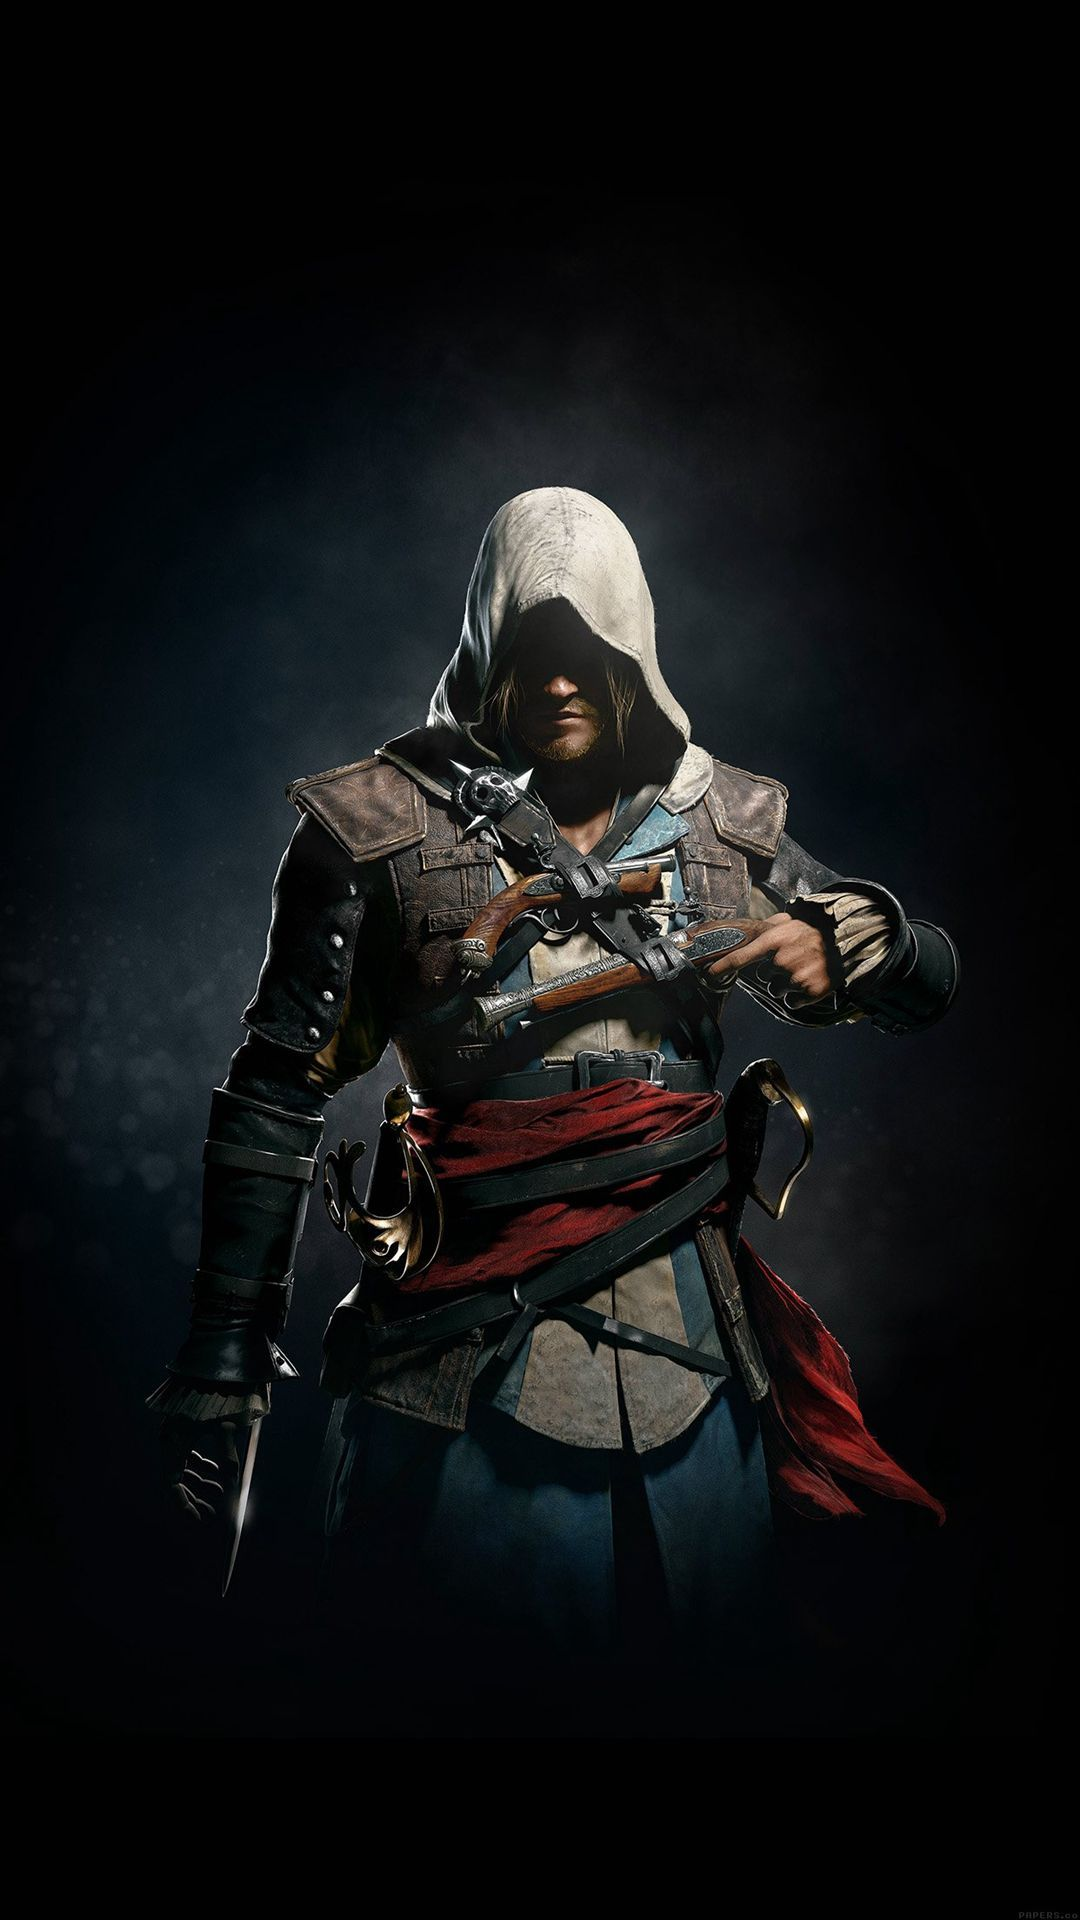 Assassins Creed Wallpaper Hupages Download Iphone Wallpapers Assassin S Creed Wallpaper Assassin S Creed Hd Assassins Creed Artwork